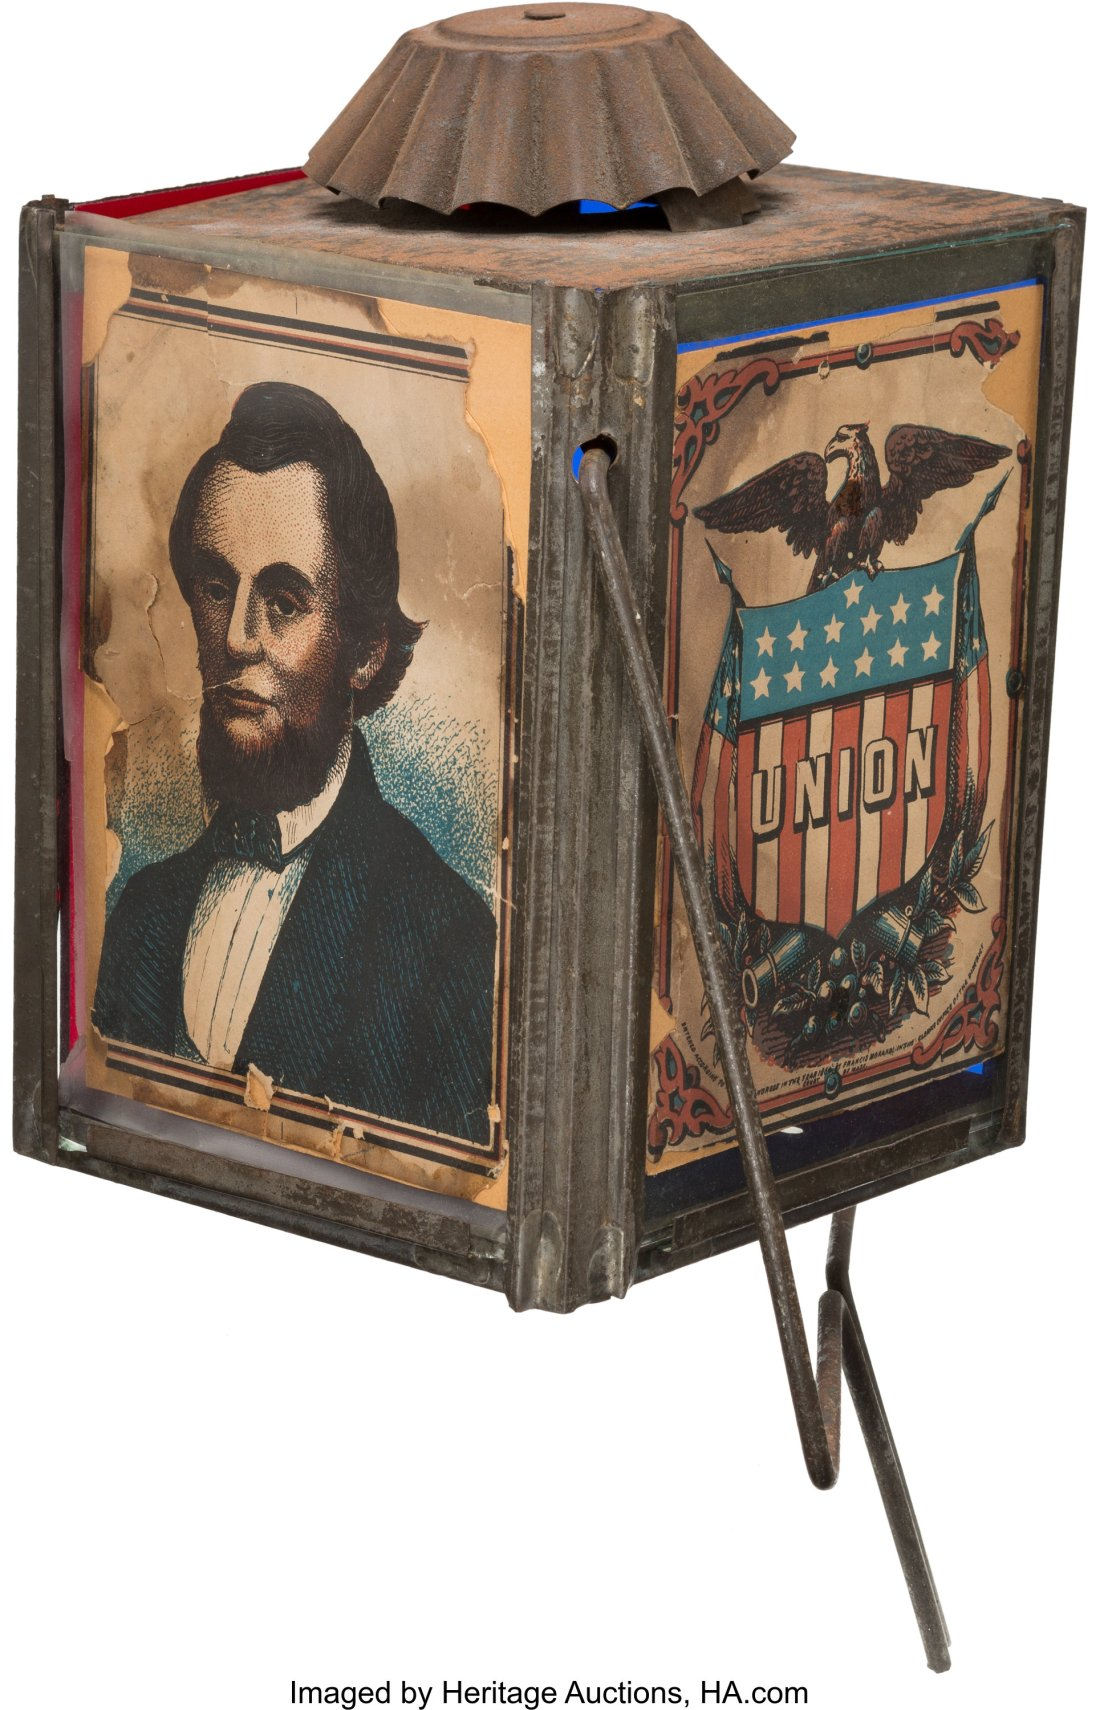 01_Abraham Lincoln A Fabulous, Colorful Political Glass & Tin Parade Lantern.jpg